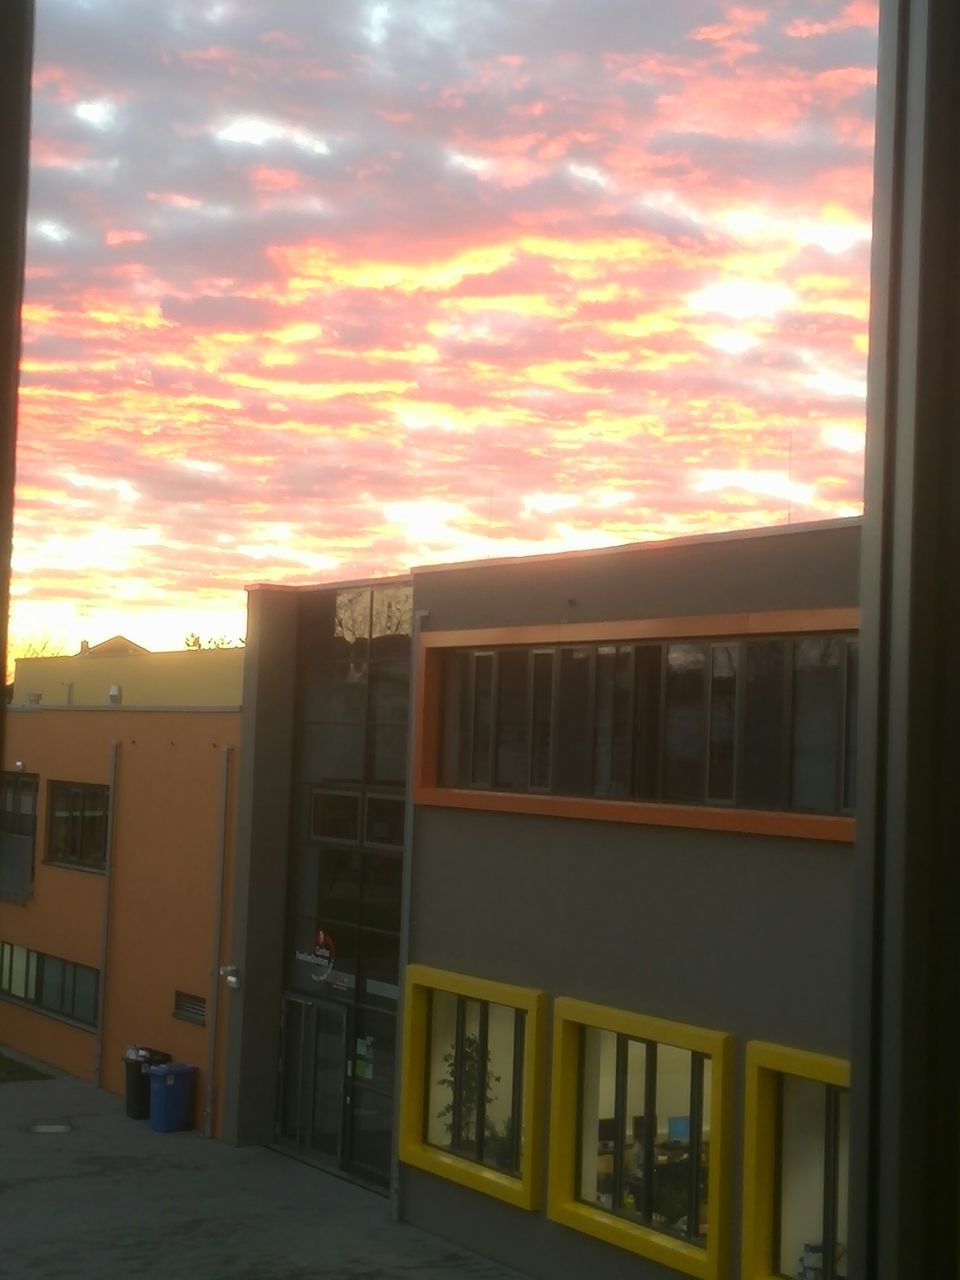 sunset, window, sky, cloud - sky, no people, indoors, architecture, day